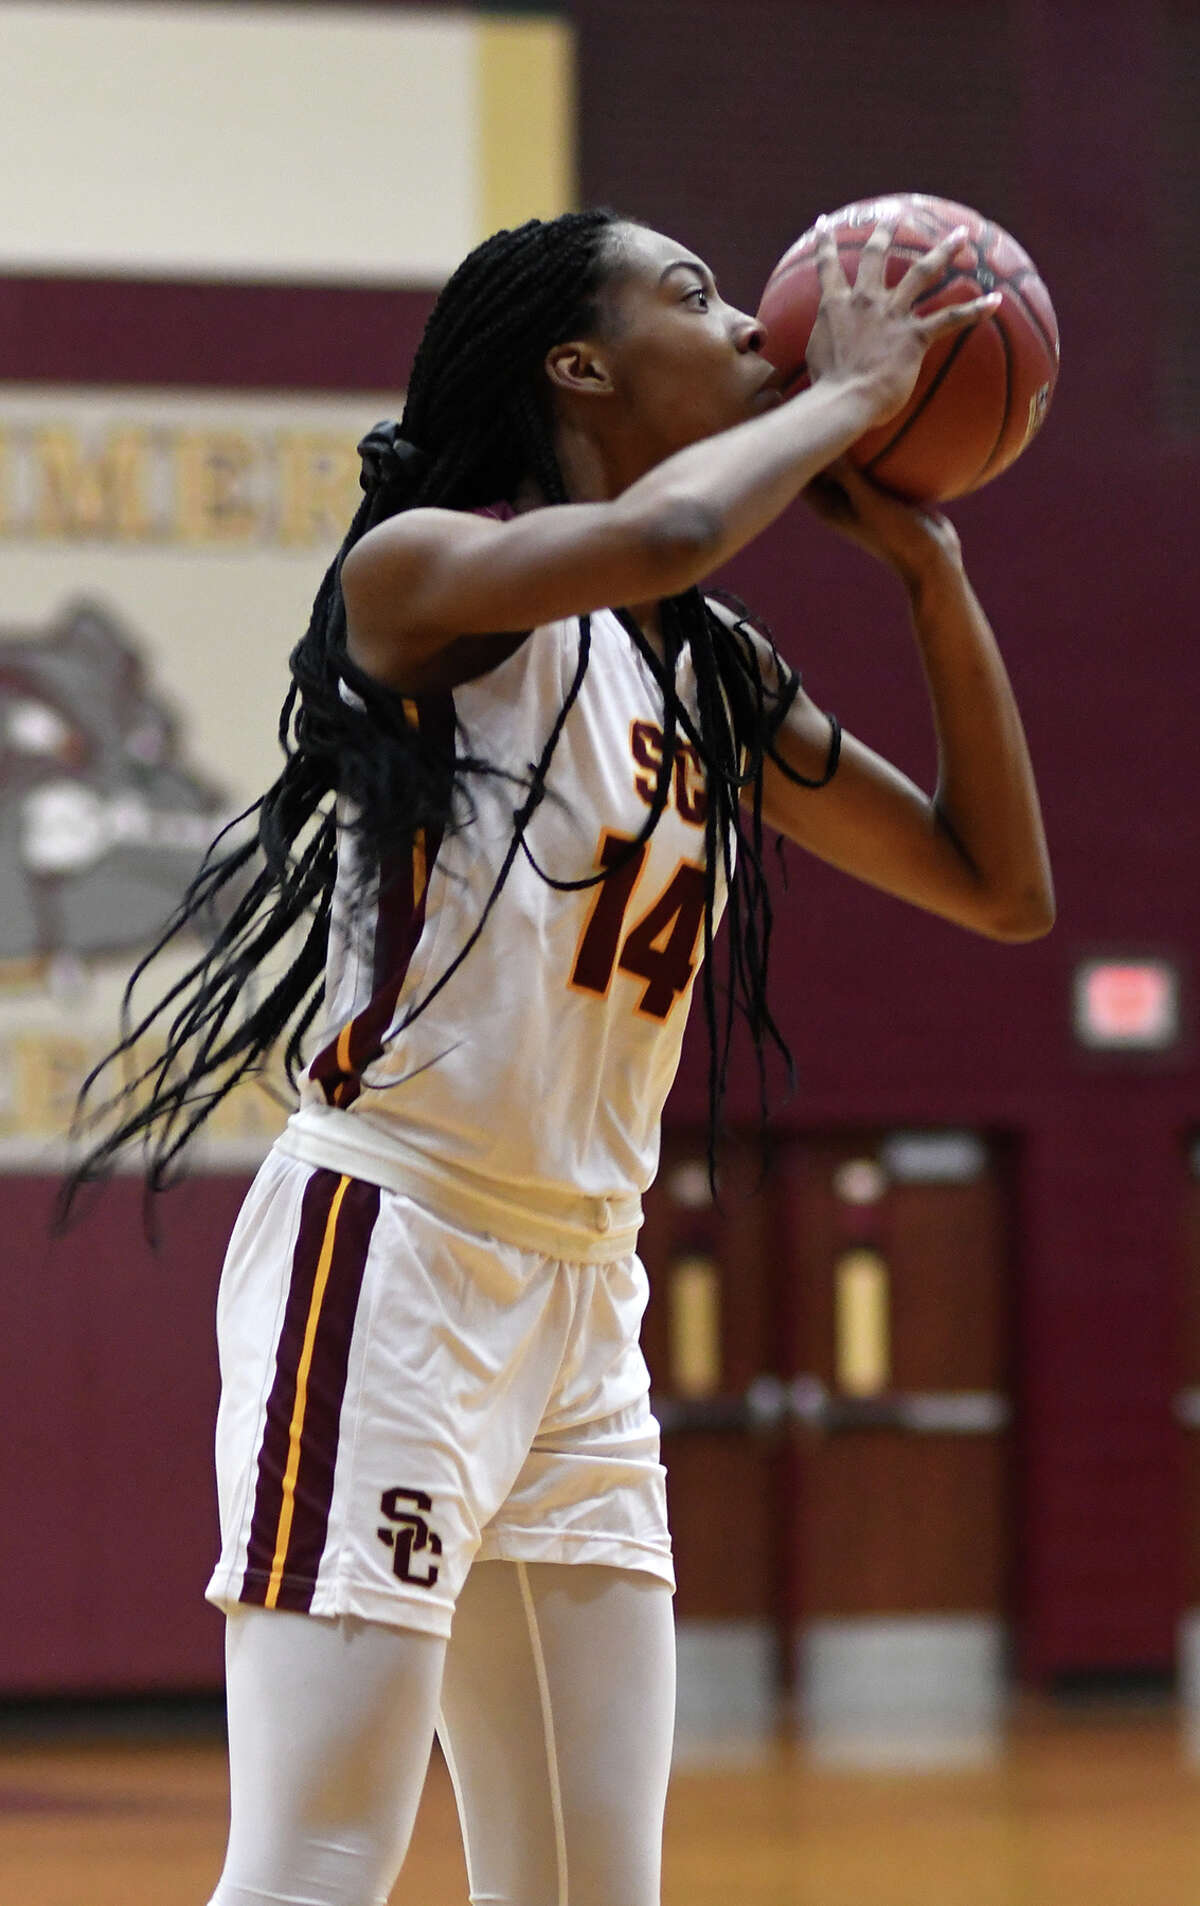 Summer Creek senior forward Maliyah Johnson sets for a shot against the Atascocita defense during the 1st quarter of their District 22-6A matchup at Summer Creek High School on Friday, Jan. 3, 2020.